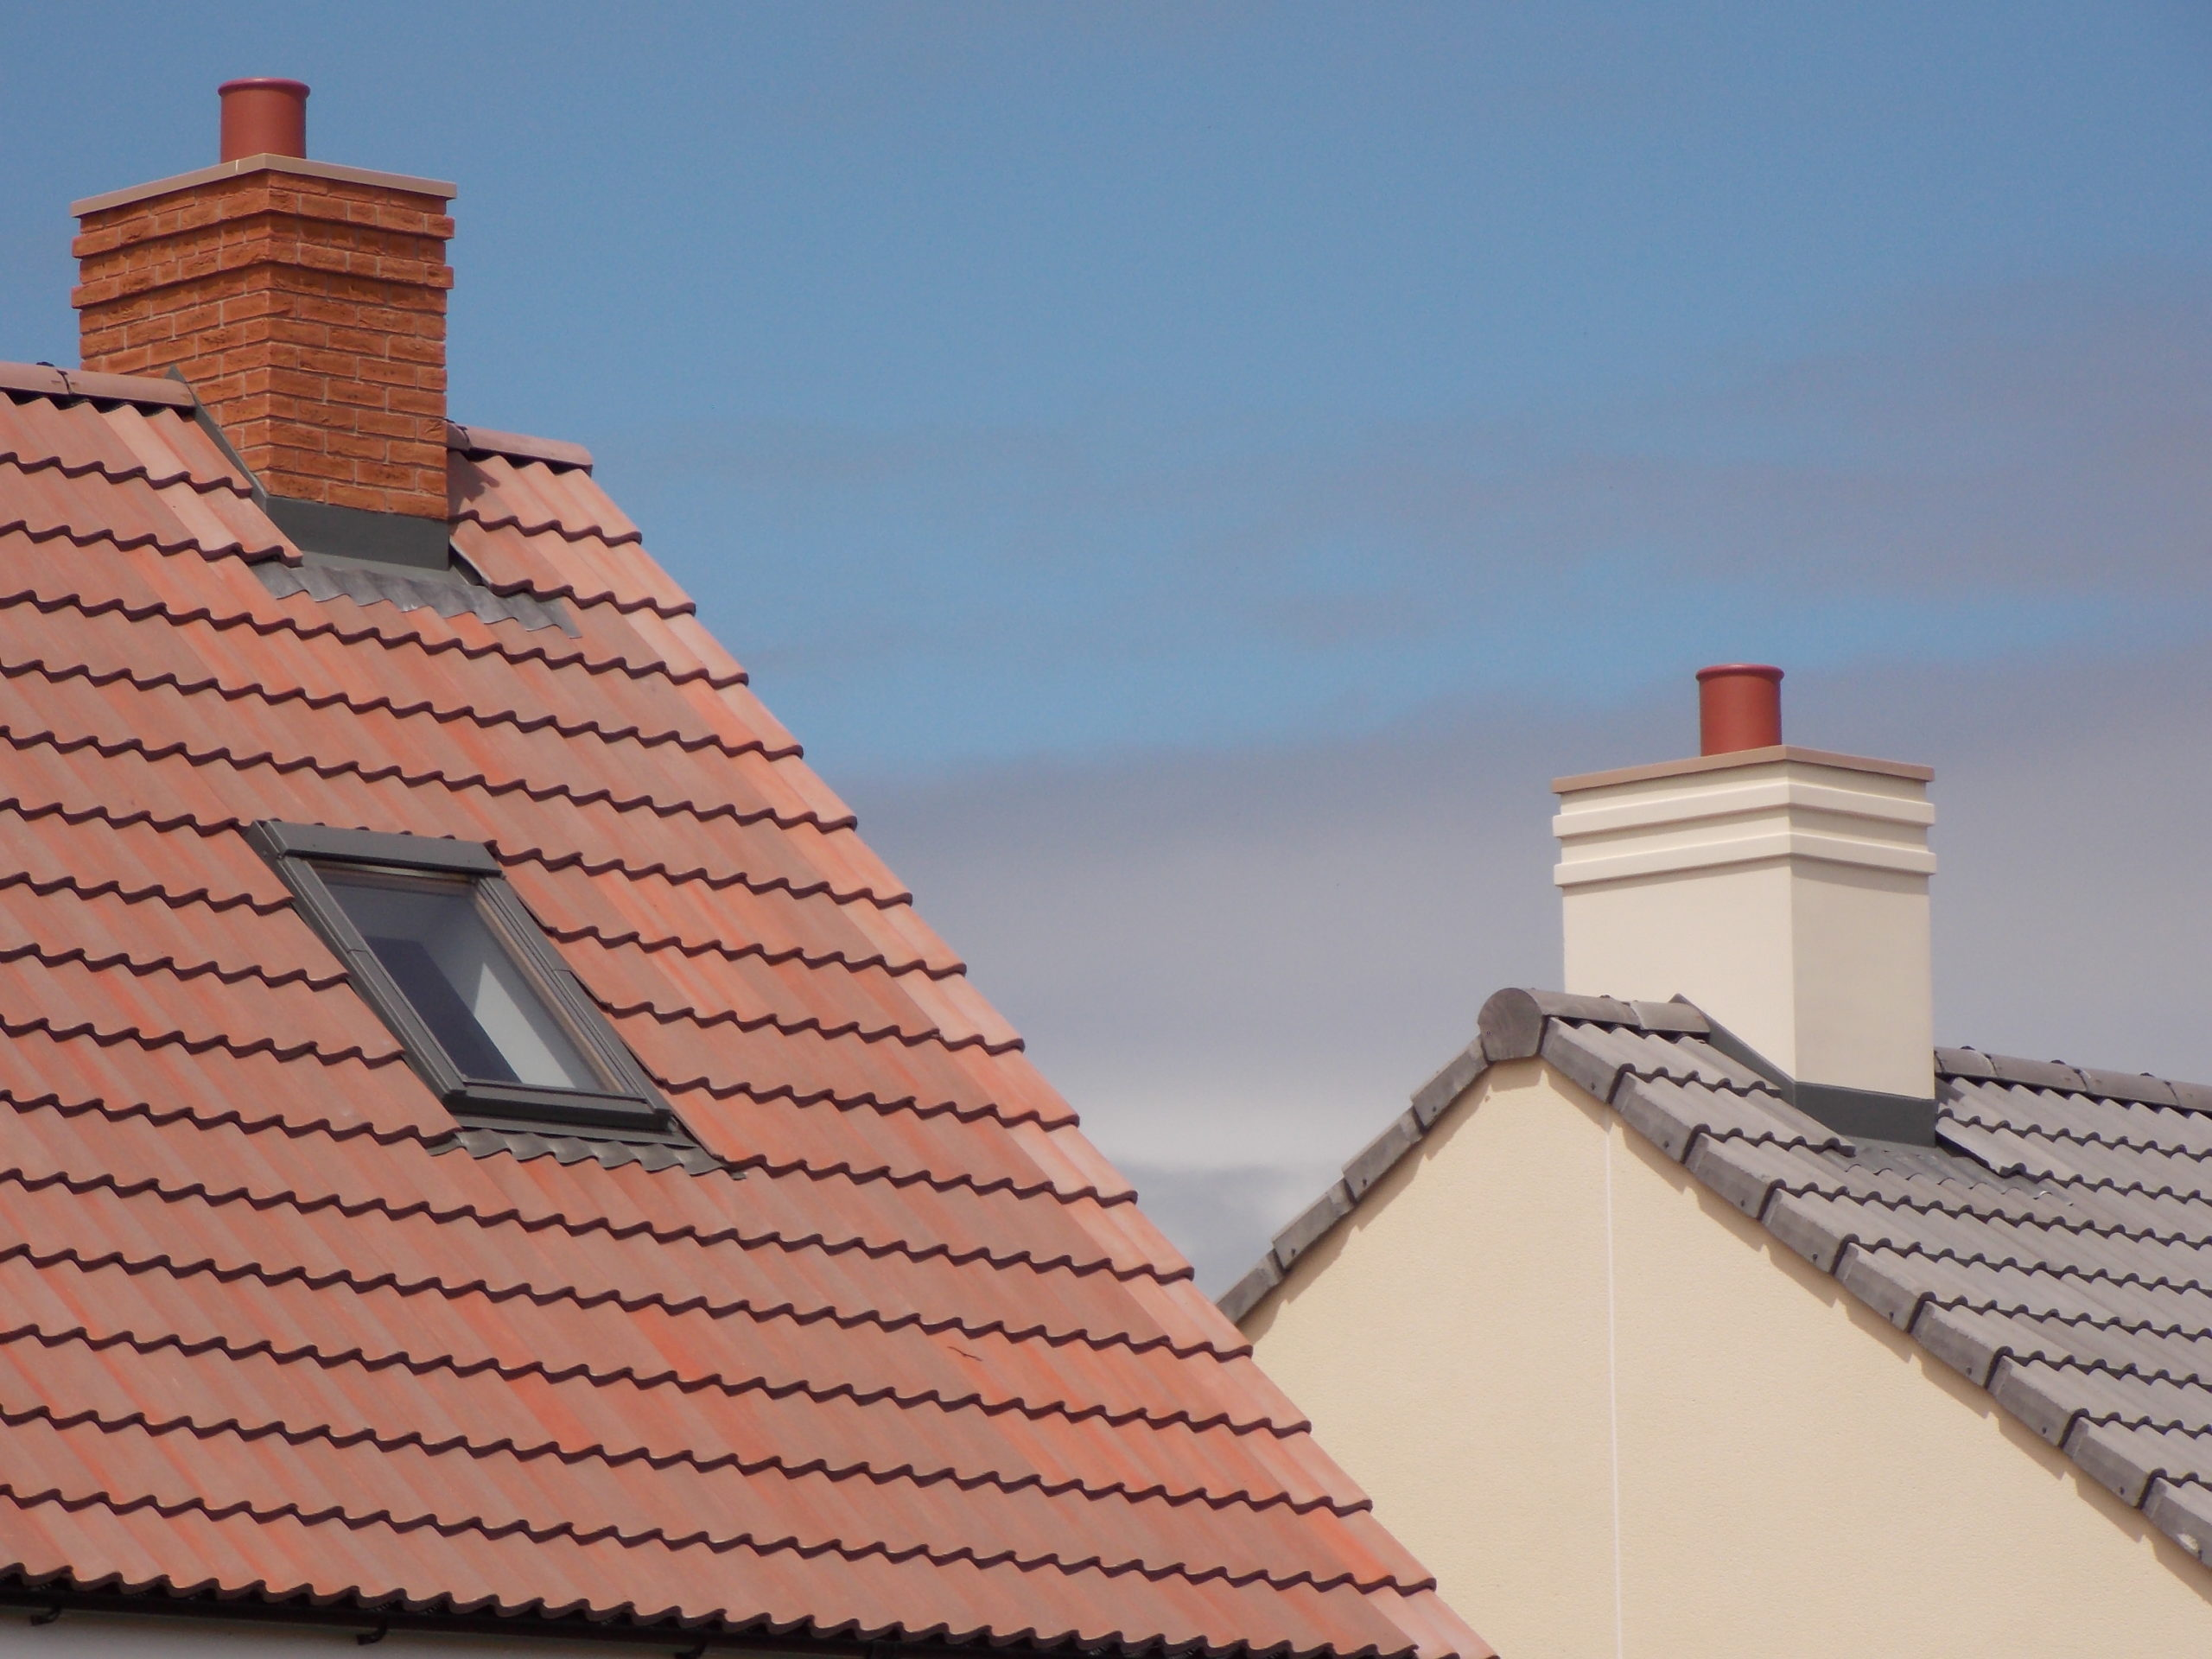 A house isn't a home without a chimney